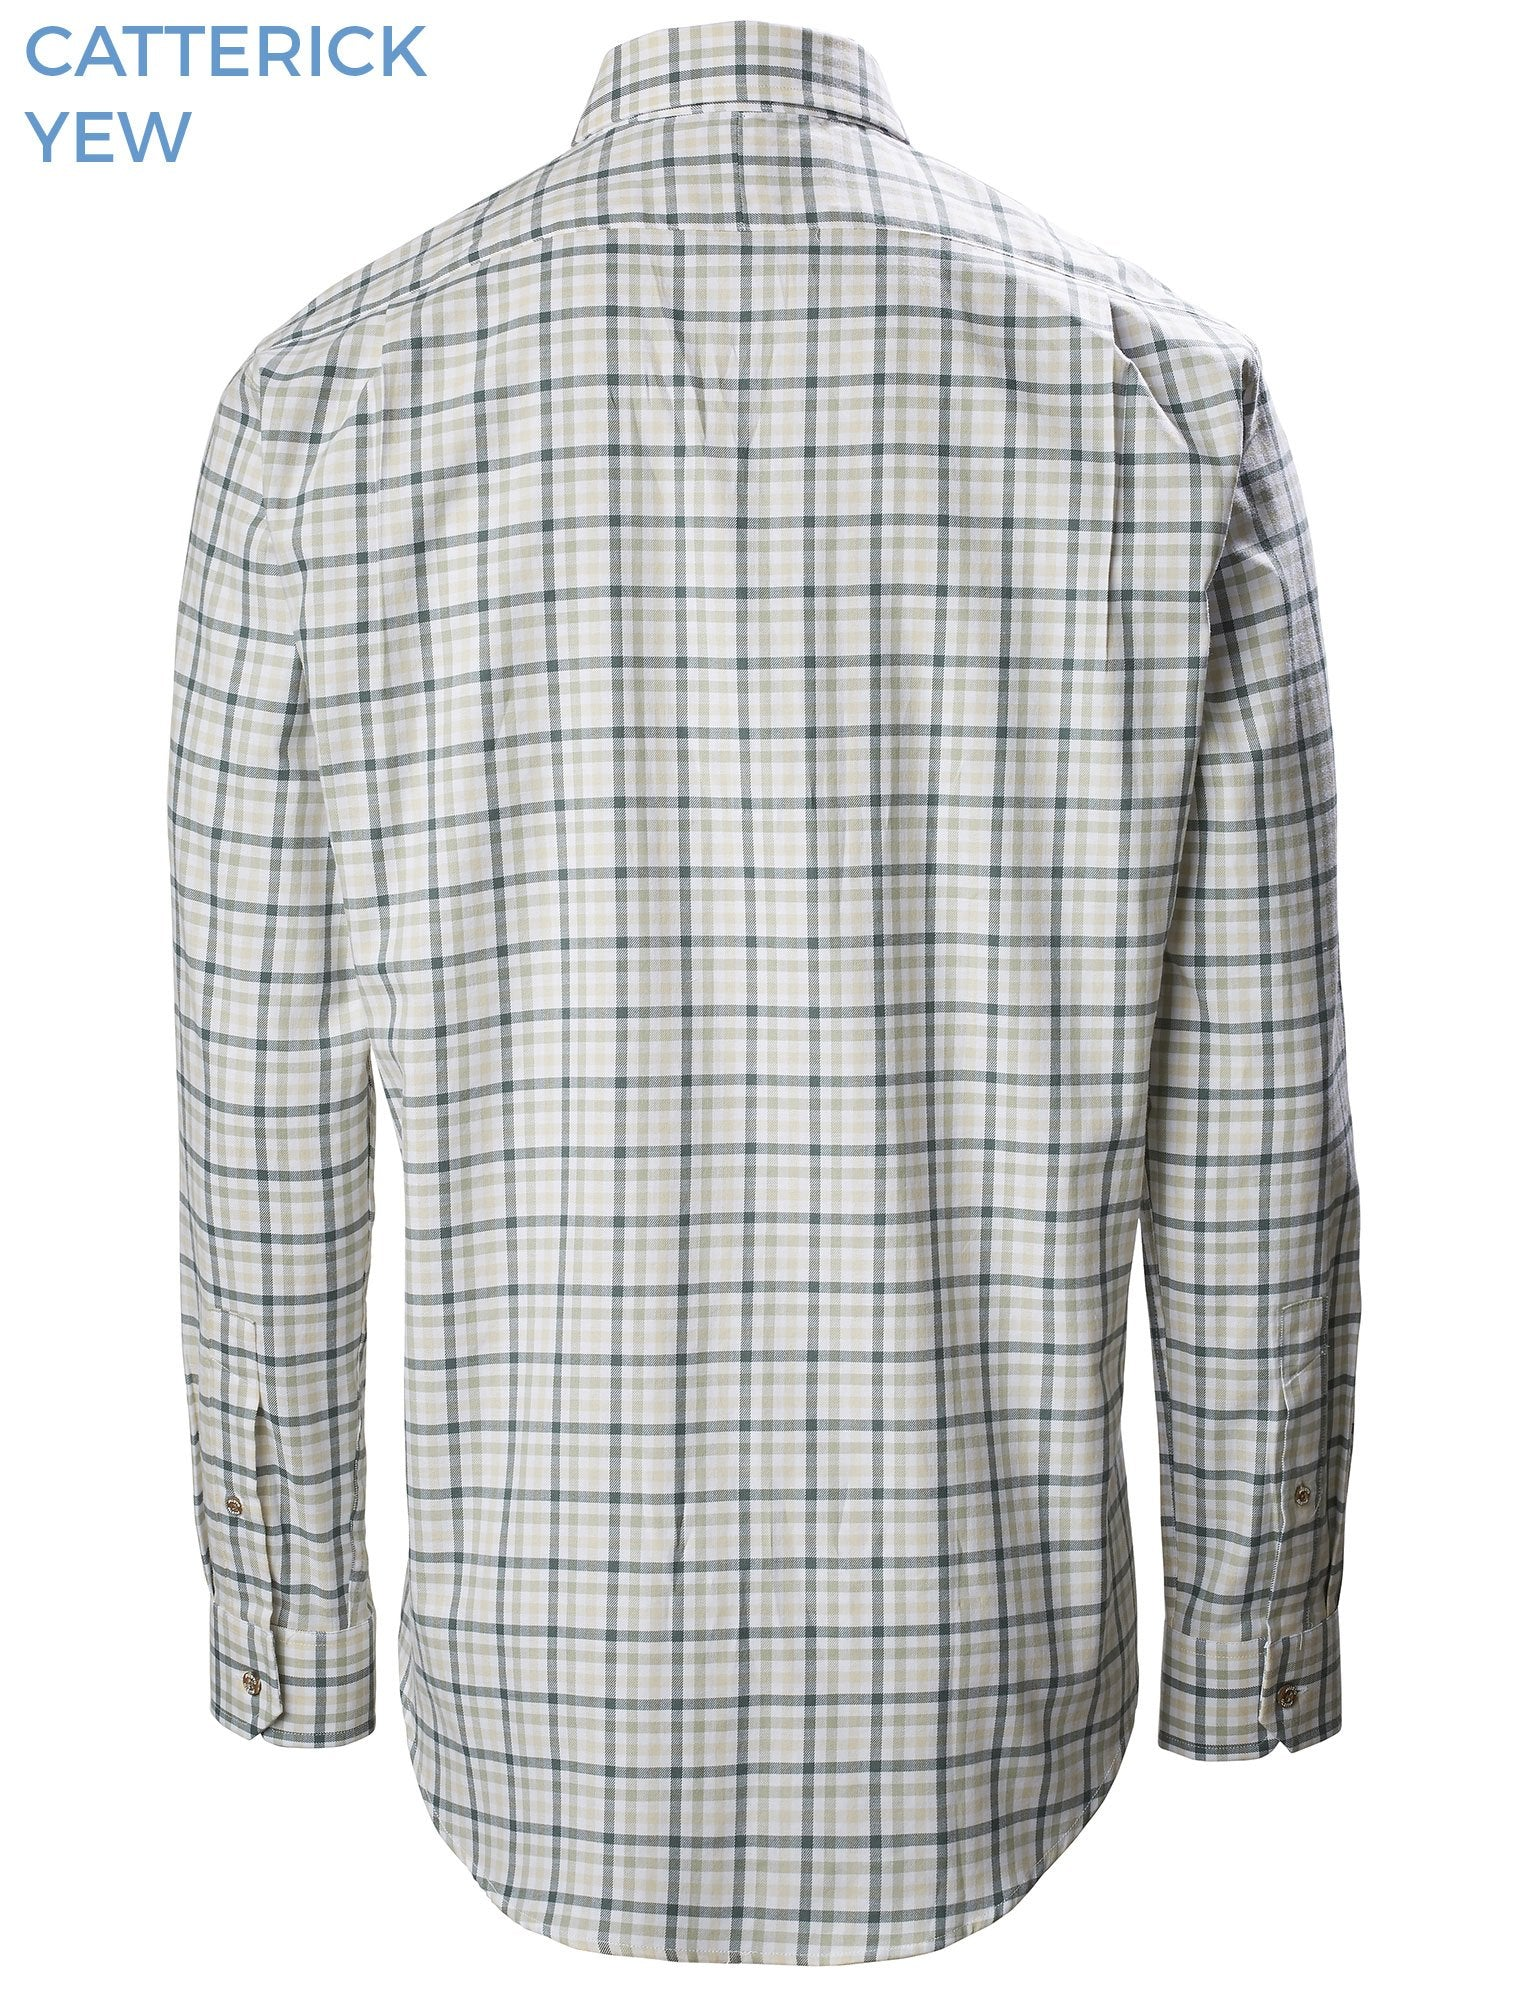 Carrick yew Classic Button Down Country Shirt by Musto